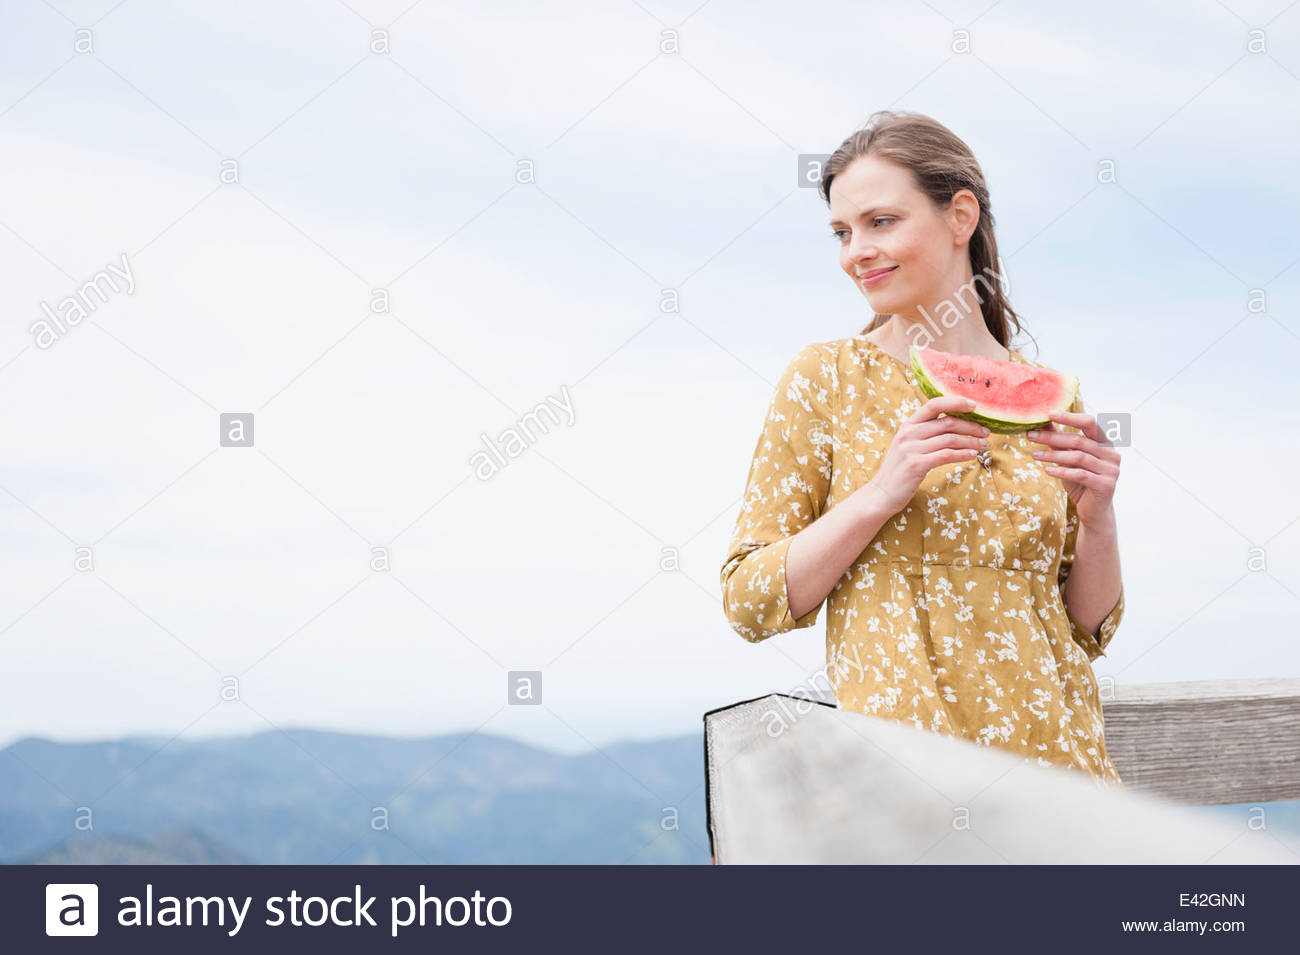 Mid adult woman eating watermelon, Wallberg, Tegernsee, Bavière, Allemagne Photo Stock